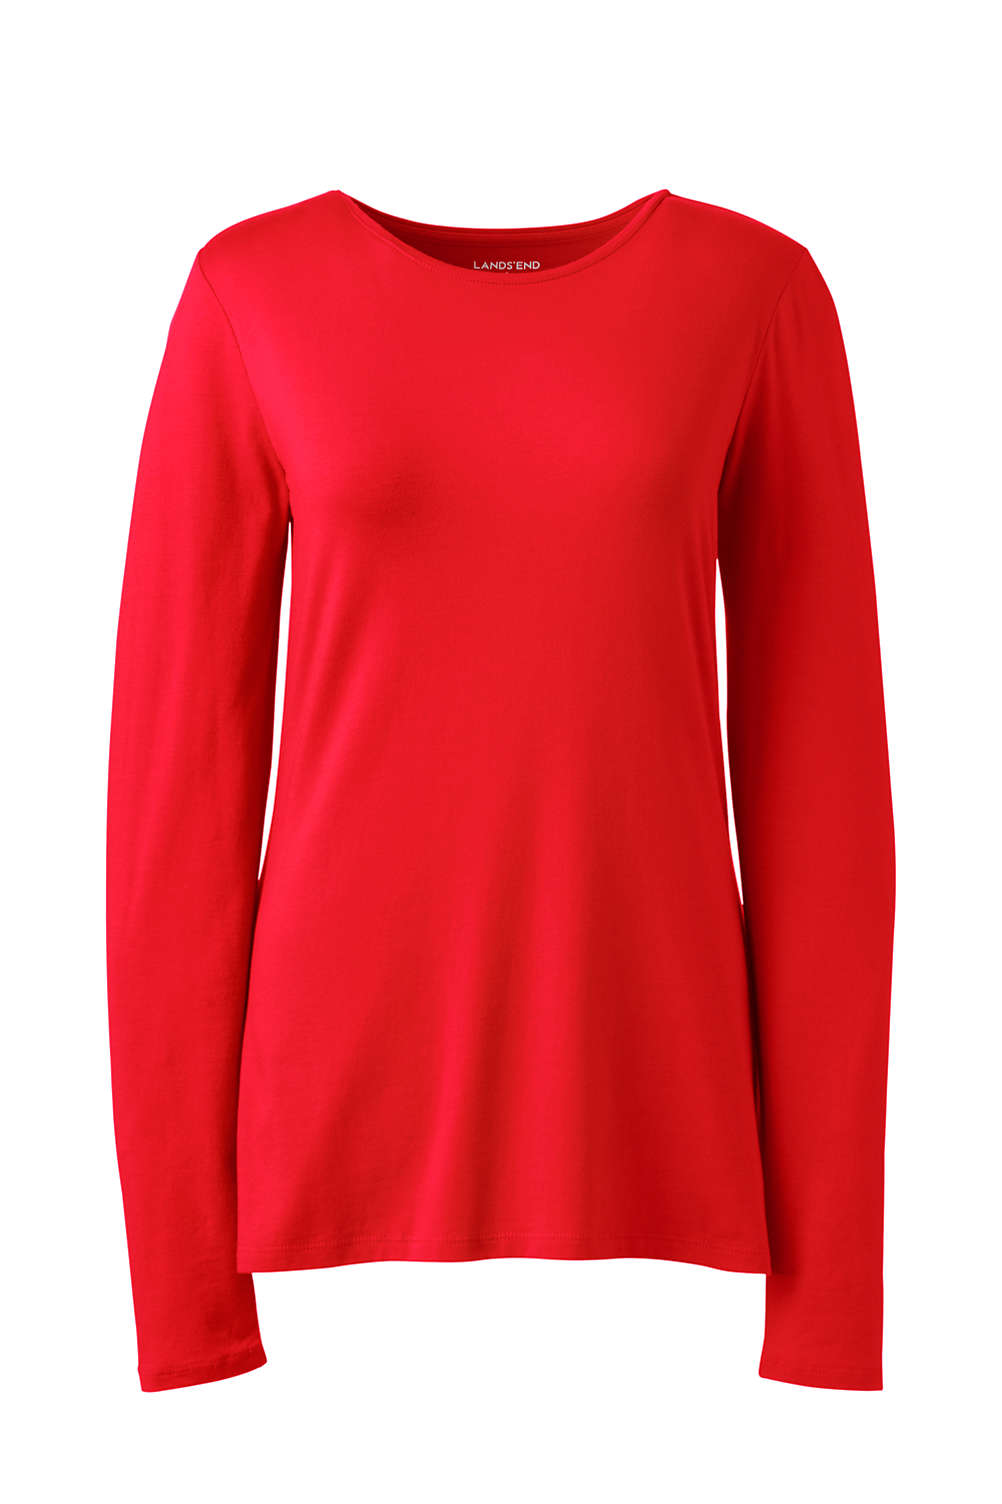 Women s Plus Size Lightweight Fitted Long Sleeve T-Shirt - Shaped Layering  Crewneck. Item  4756196Q5. View Fullscreen d49448e705